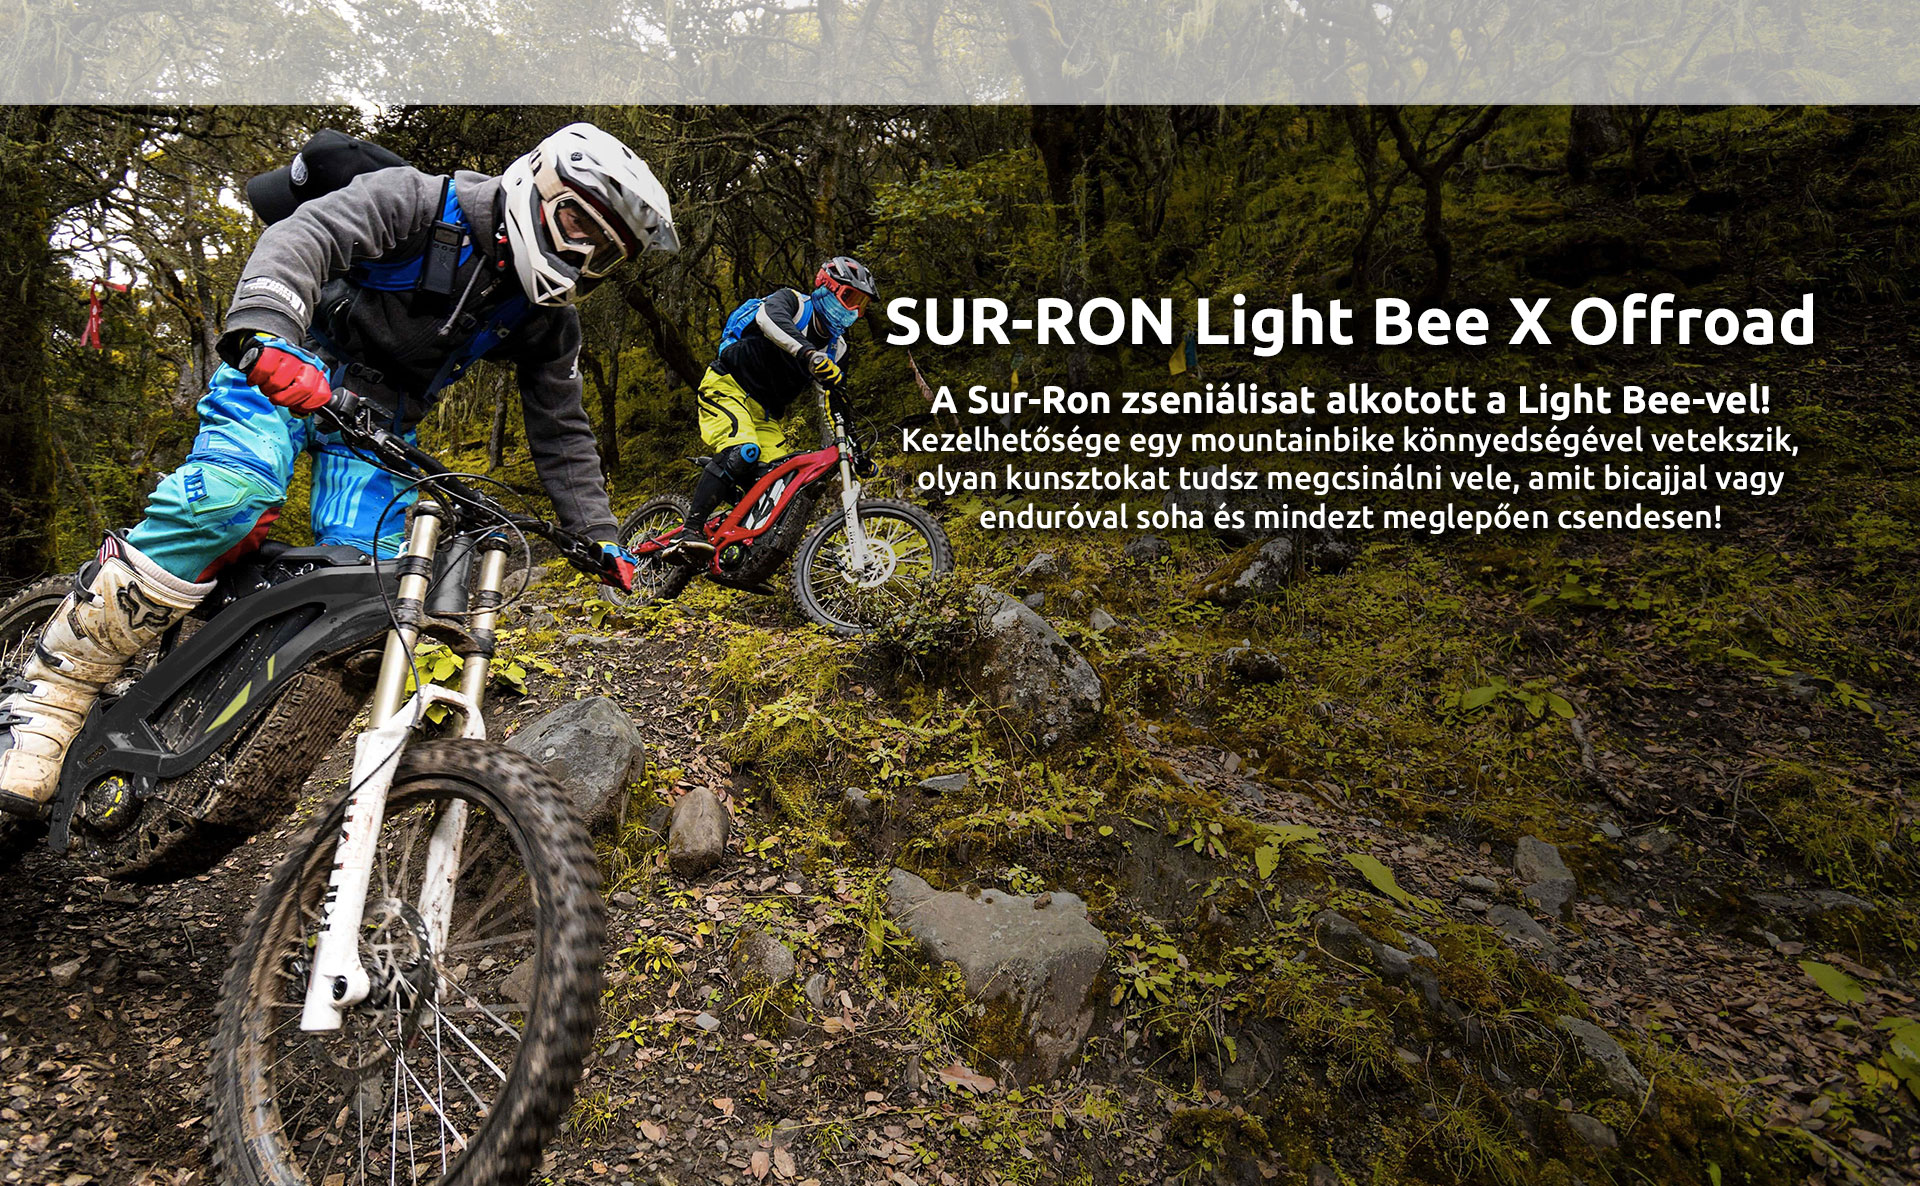 Sur-Ron Light Bee X offroad